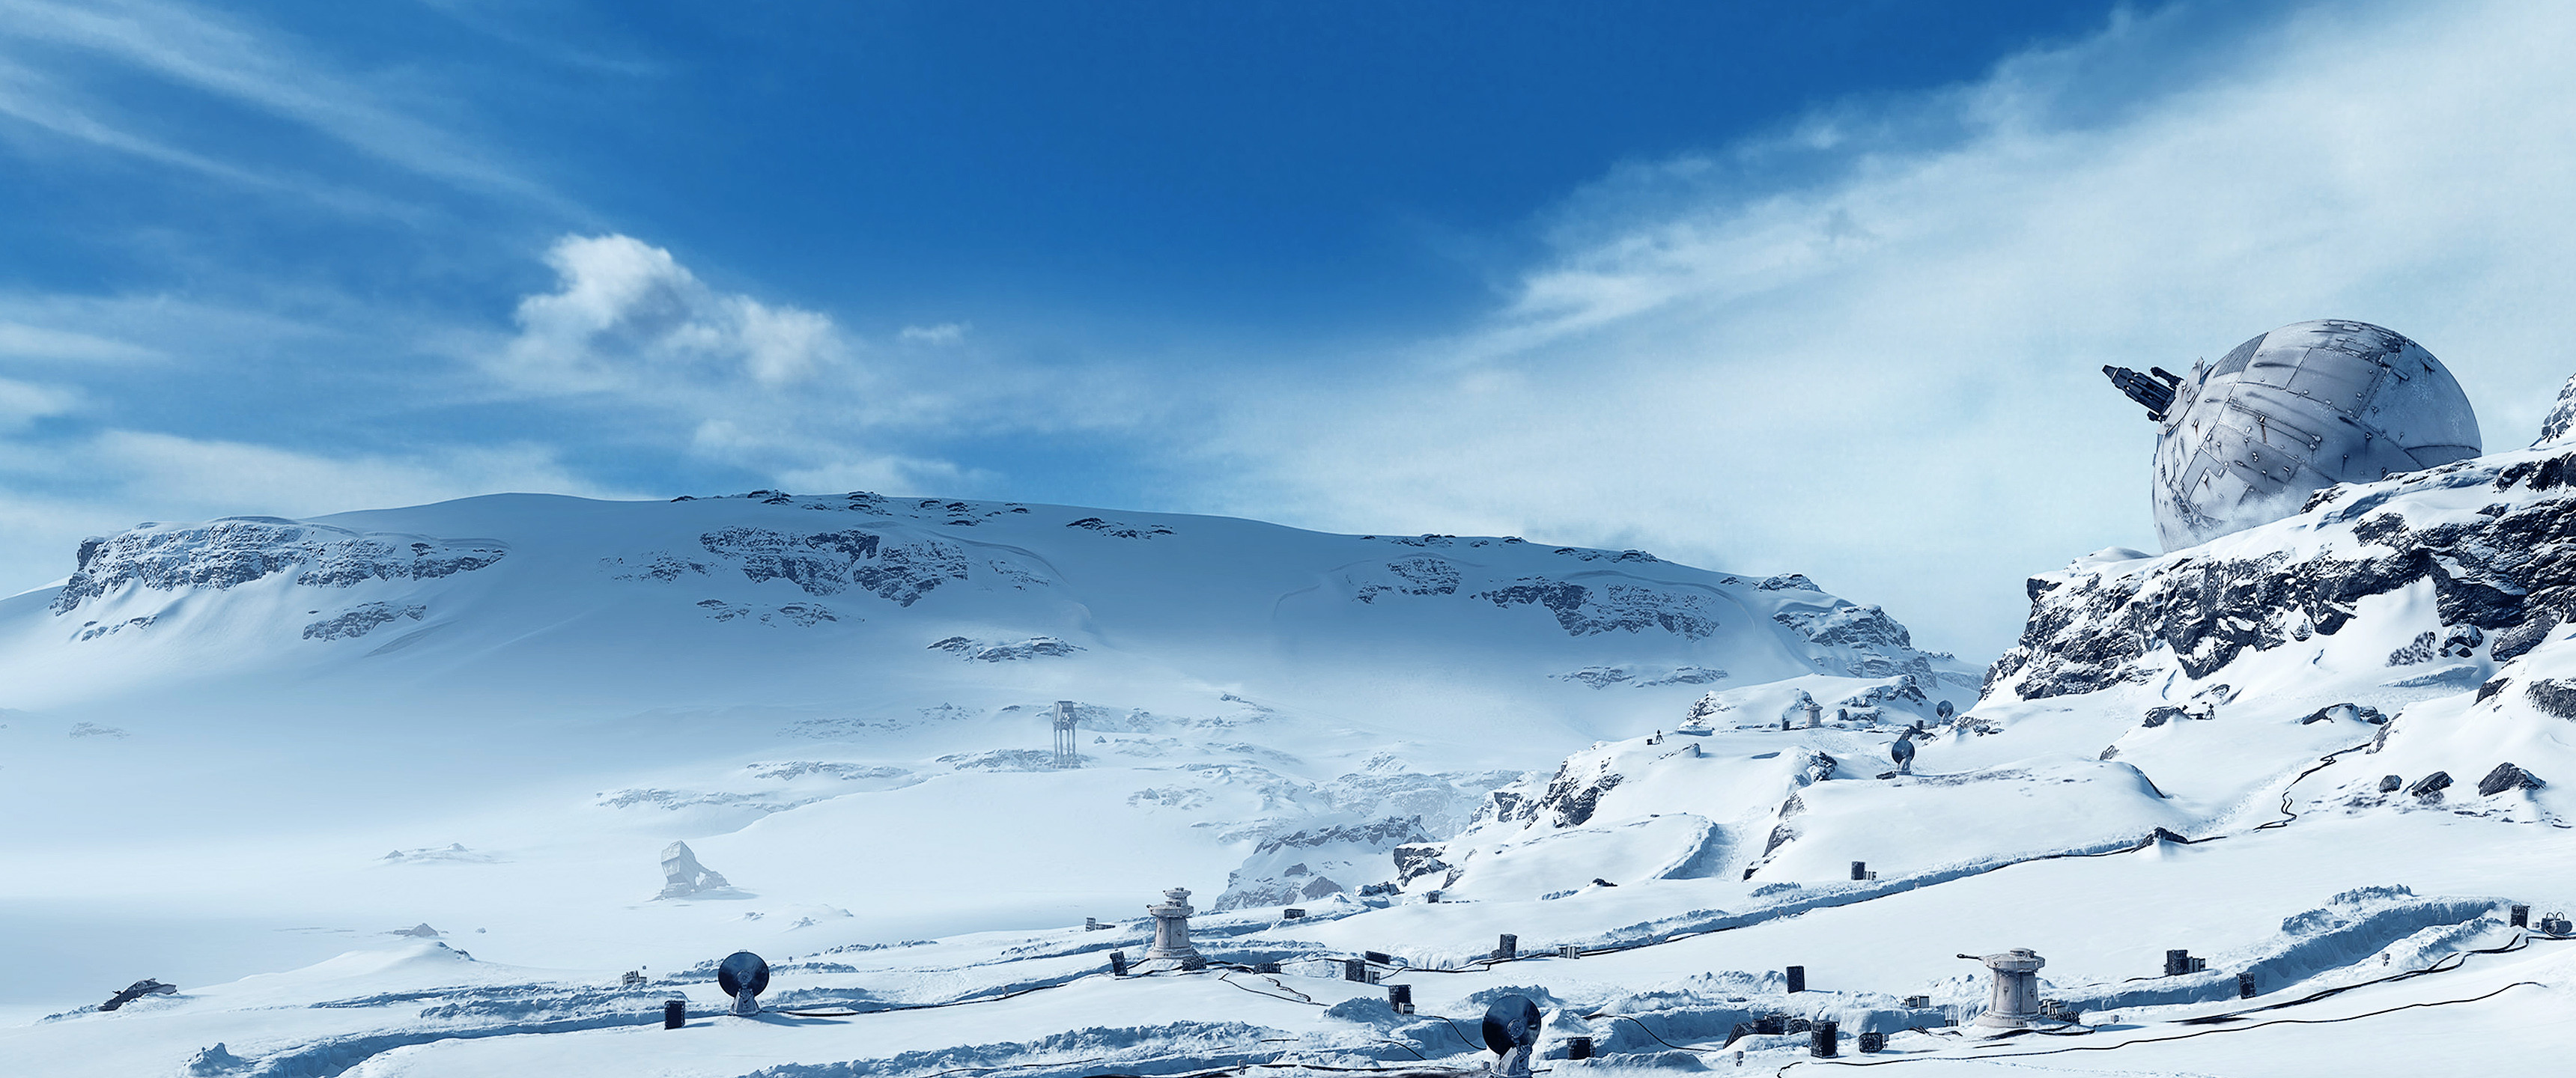 Free Download Star Wars Ultra Widescreen Backgrounds Album On Imgur 3440x1440 For Your Desktop Mobile Tablet Explore 37 Star Wars Snow Background Star Wars Snow Background Star Wars Star